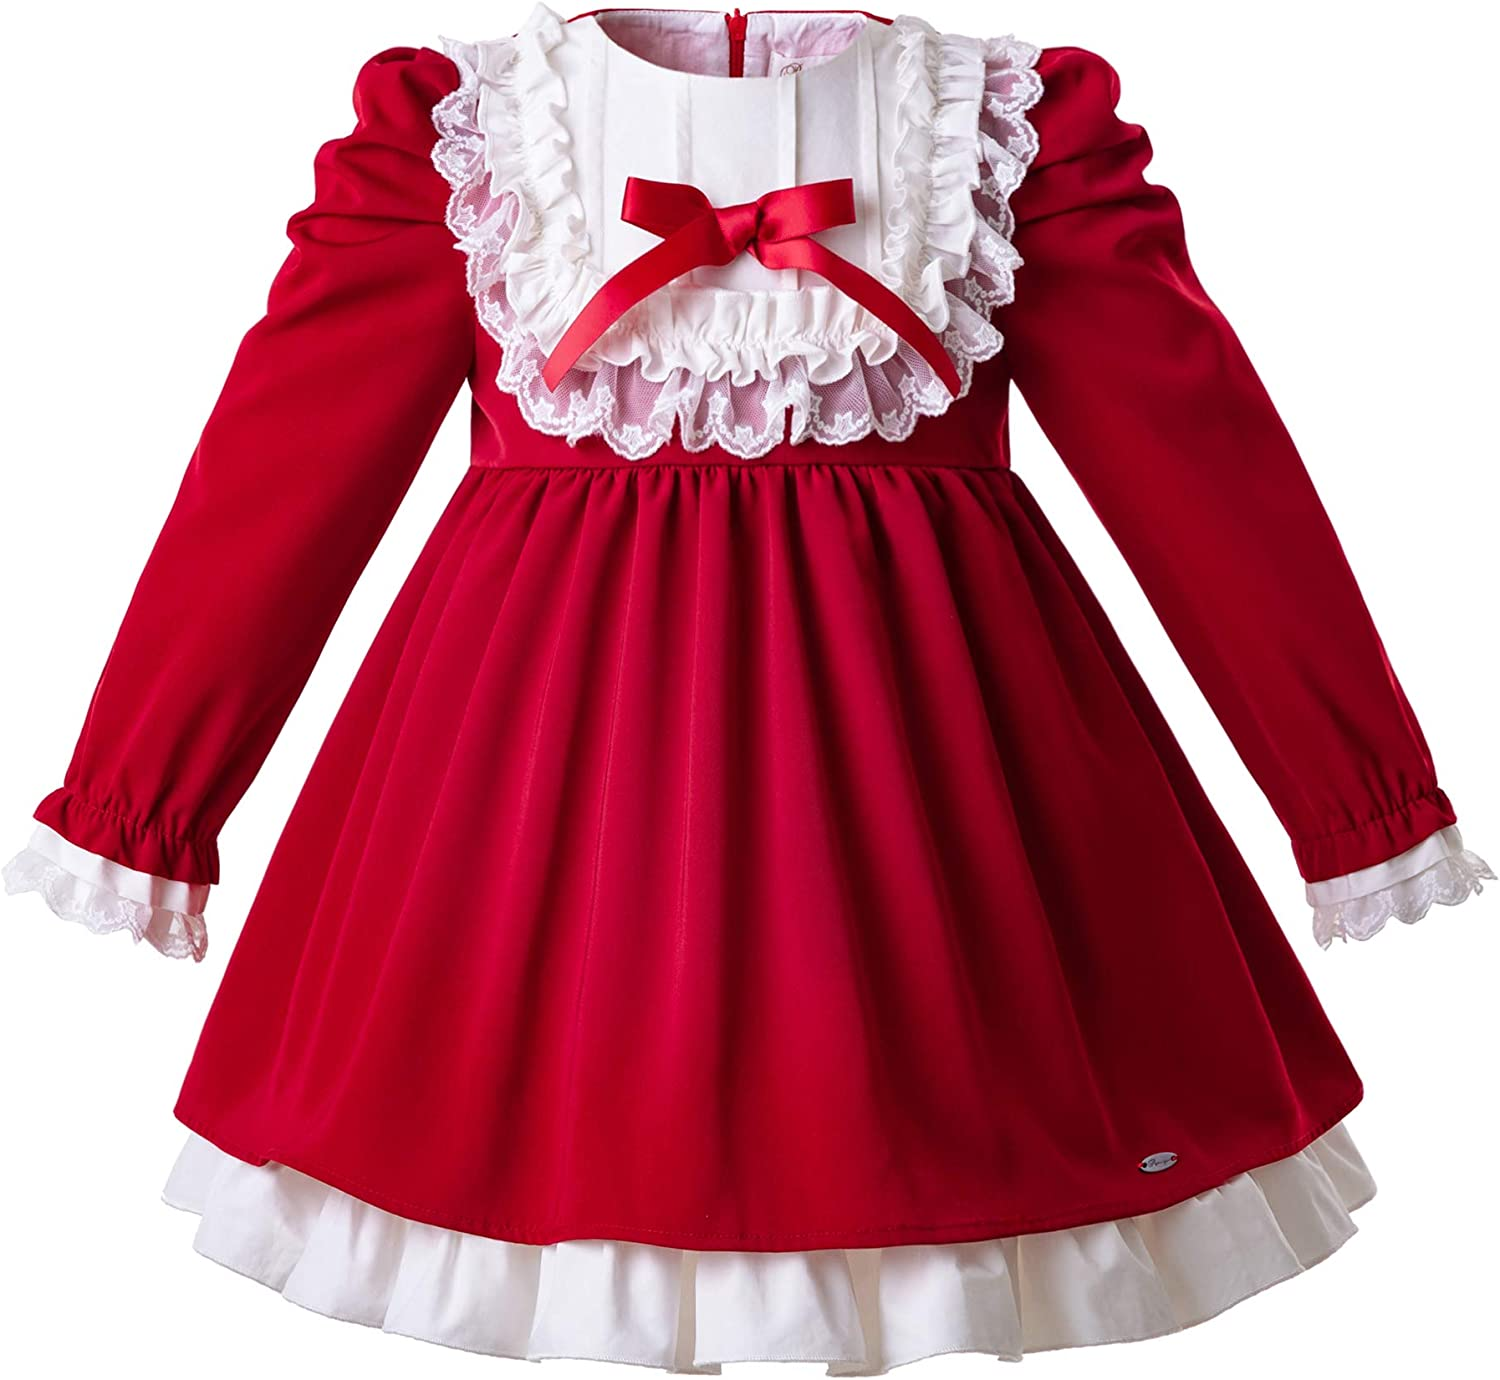 Pettigirl Winter Girls Dresses Red Casu Fall Special price for a limited time Party Sale Princess Lace